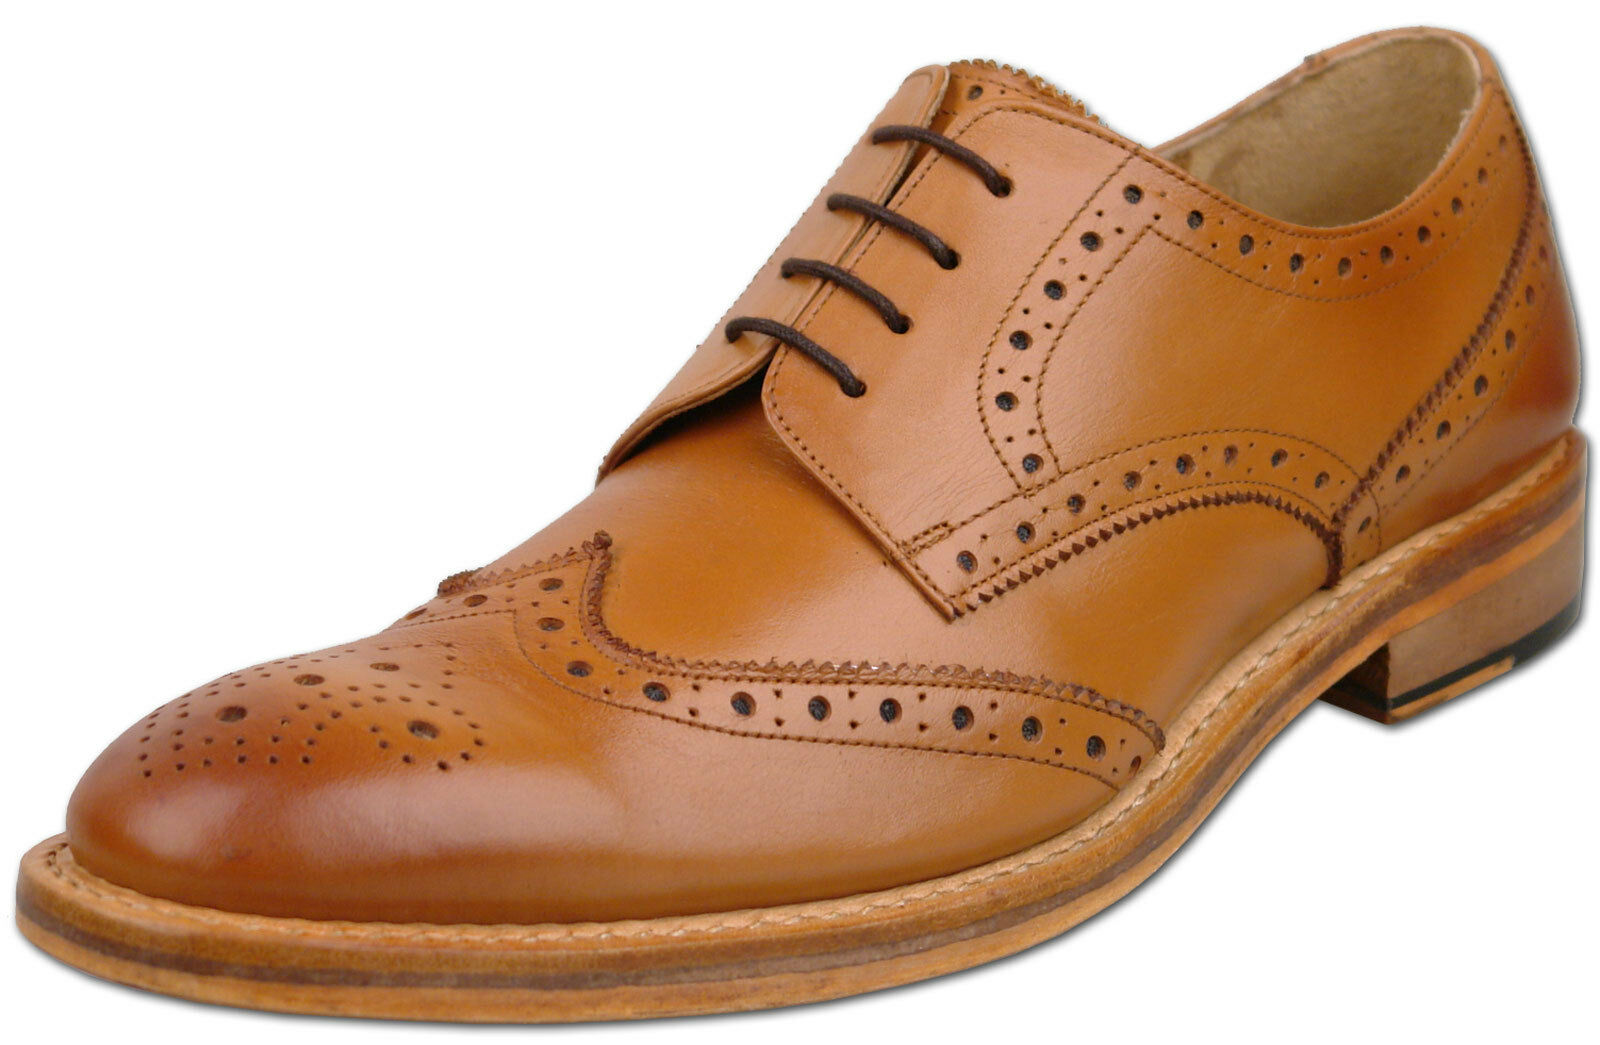 Mens New Tan Full Leather Lace Up Formal Brogues Shoes Size 6 7 8 9 10 11 12